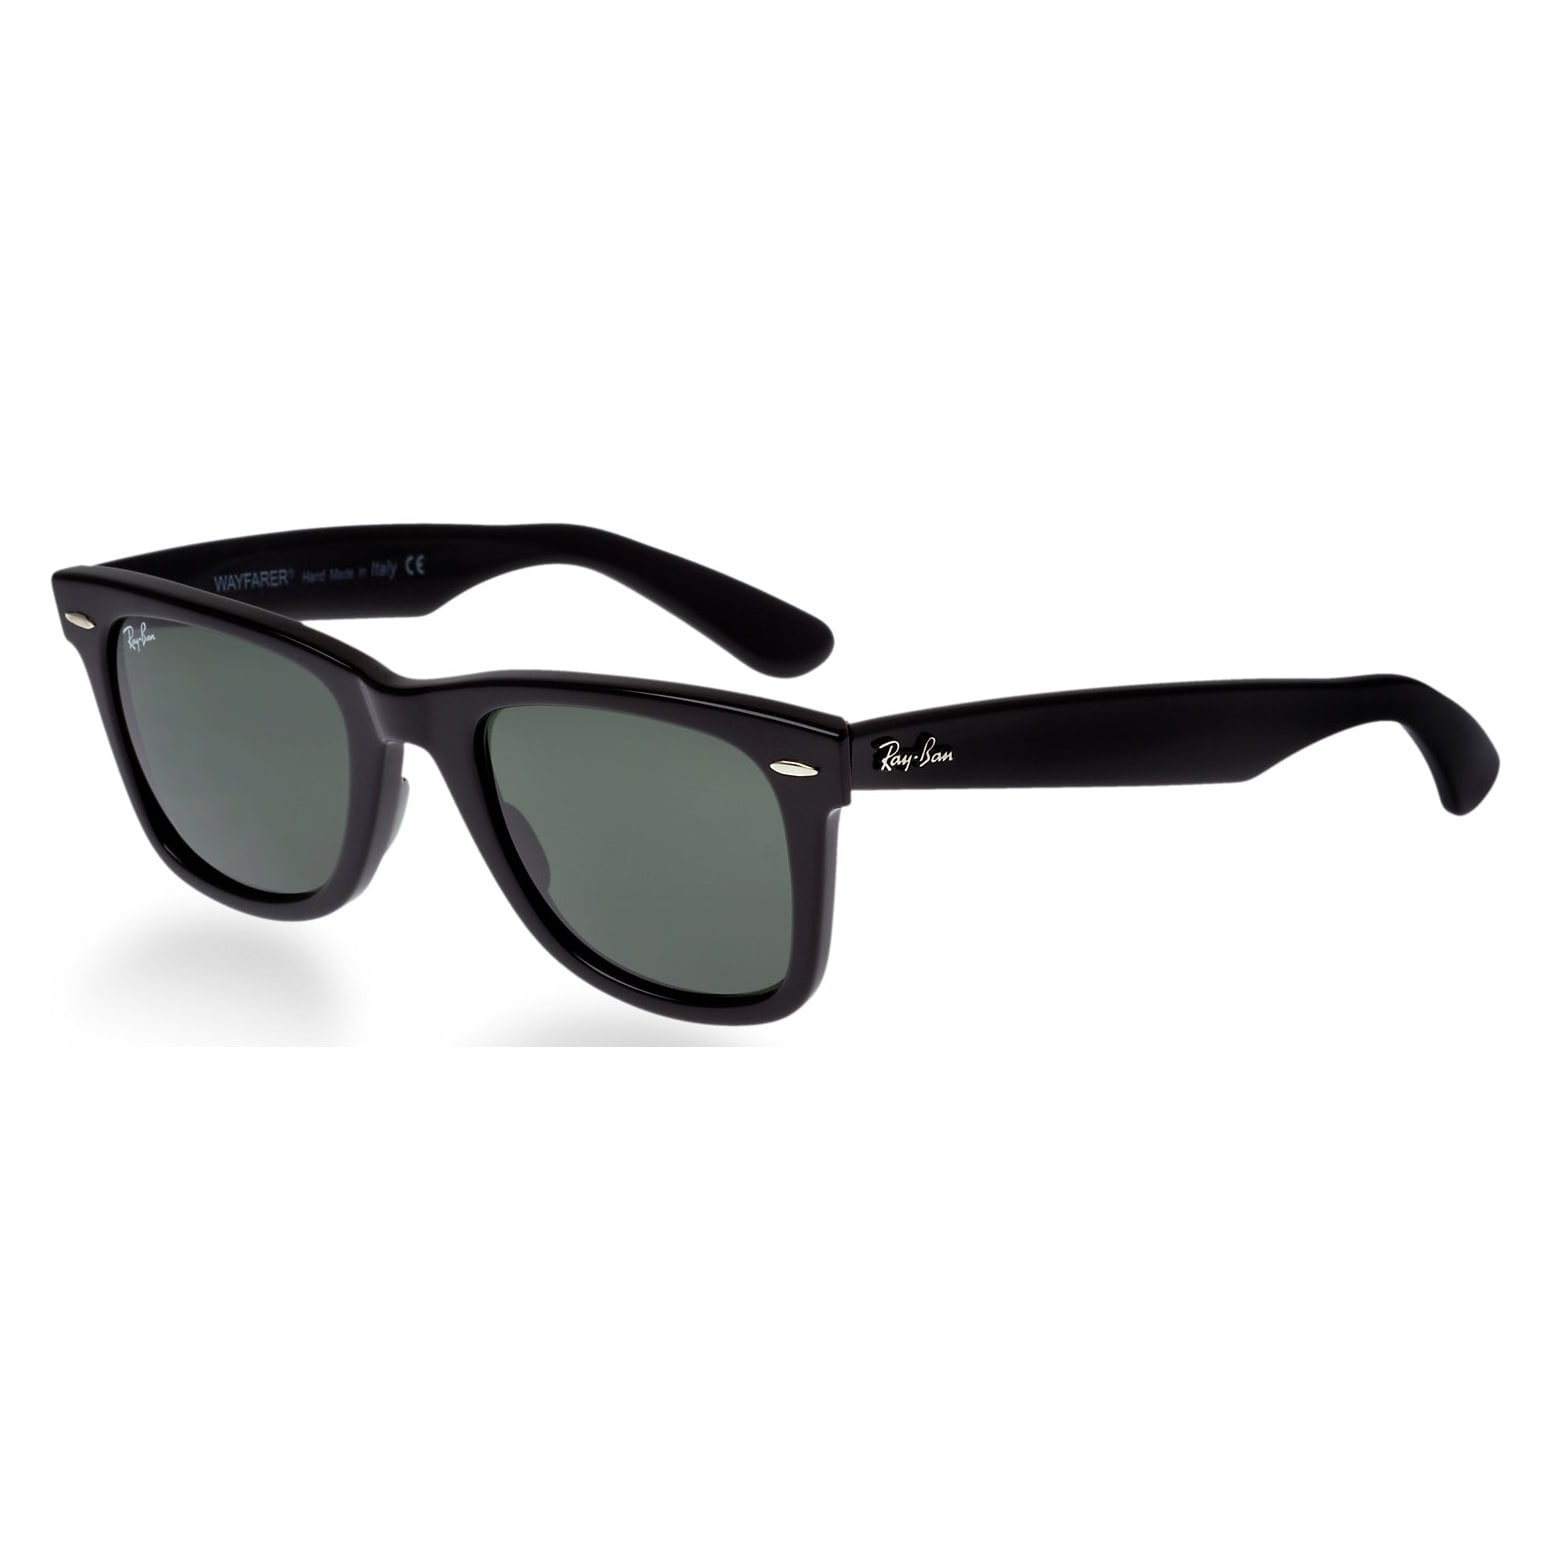 05c8f79230c76 Buy Ray-Ban Fashion Sunglasses Online at Overstock